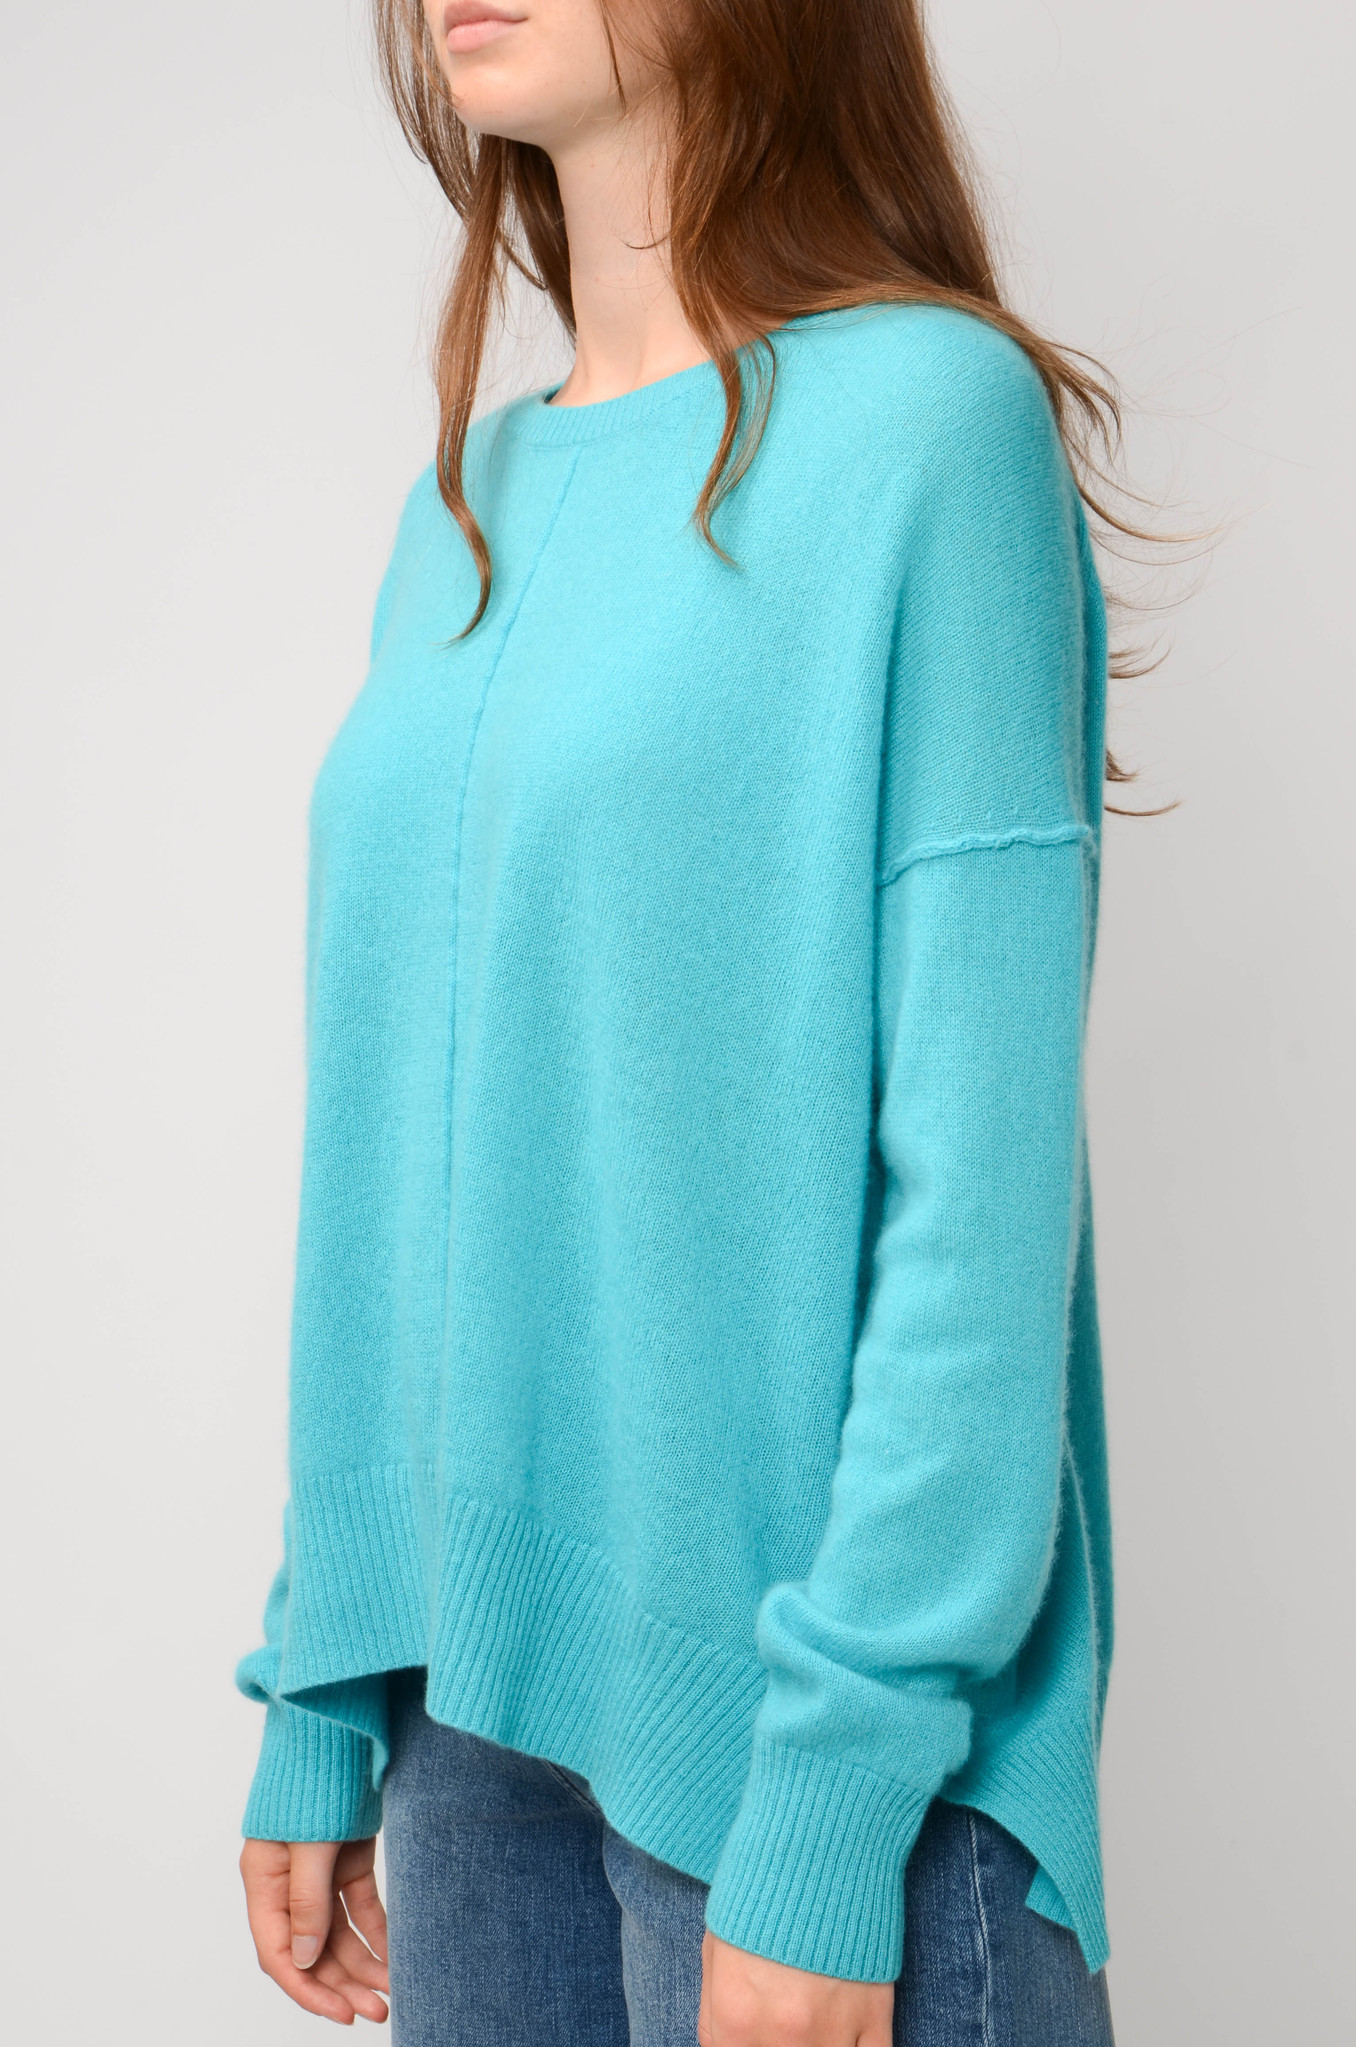 KENZA SWEATER IN TURQUOISE-3